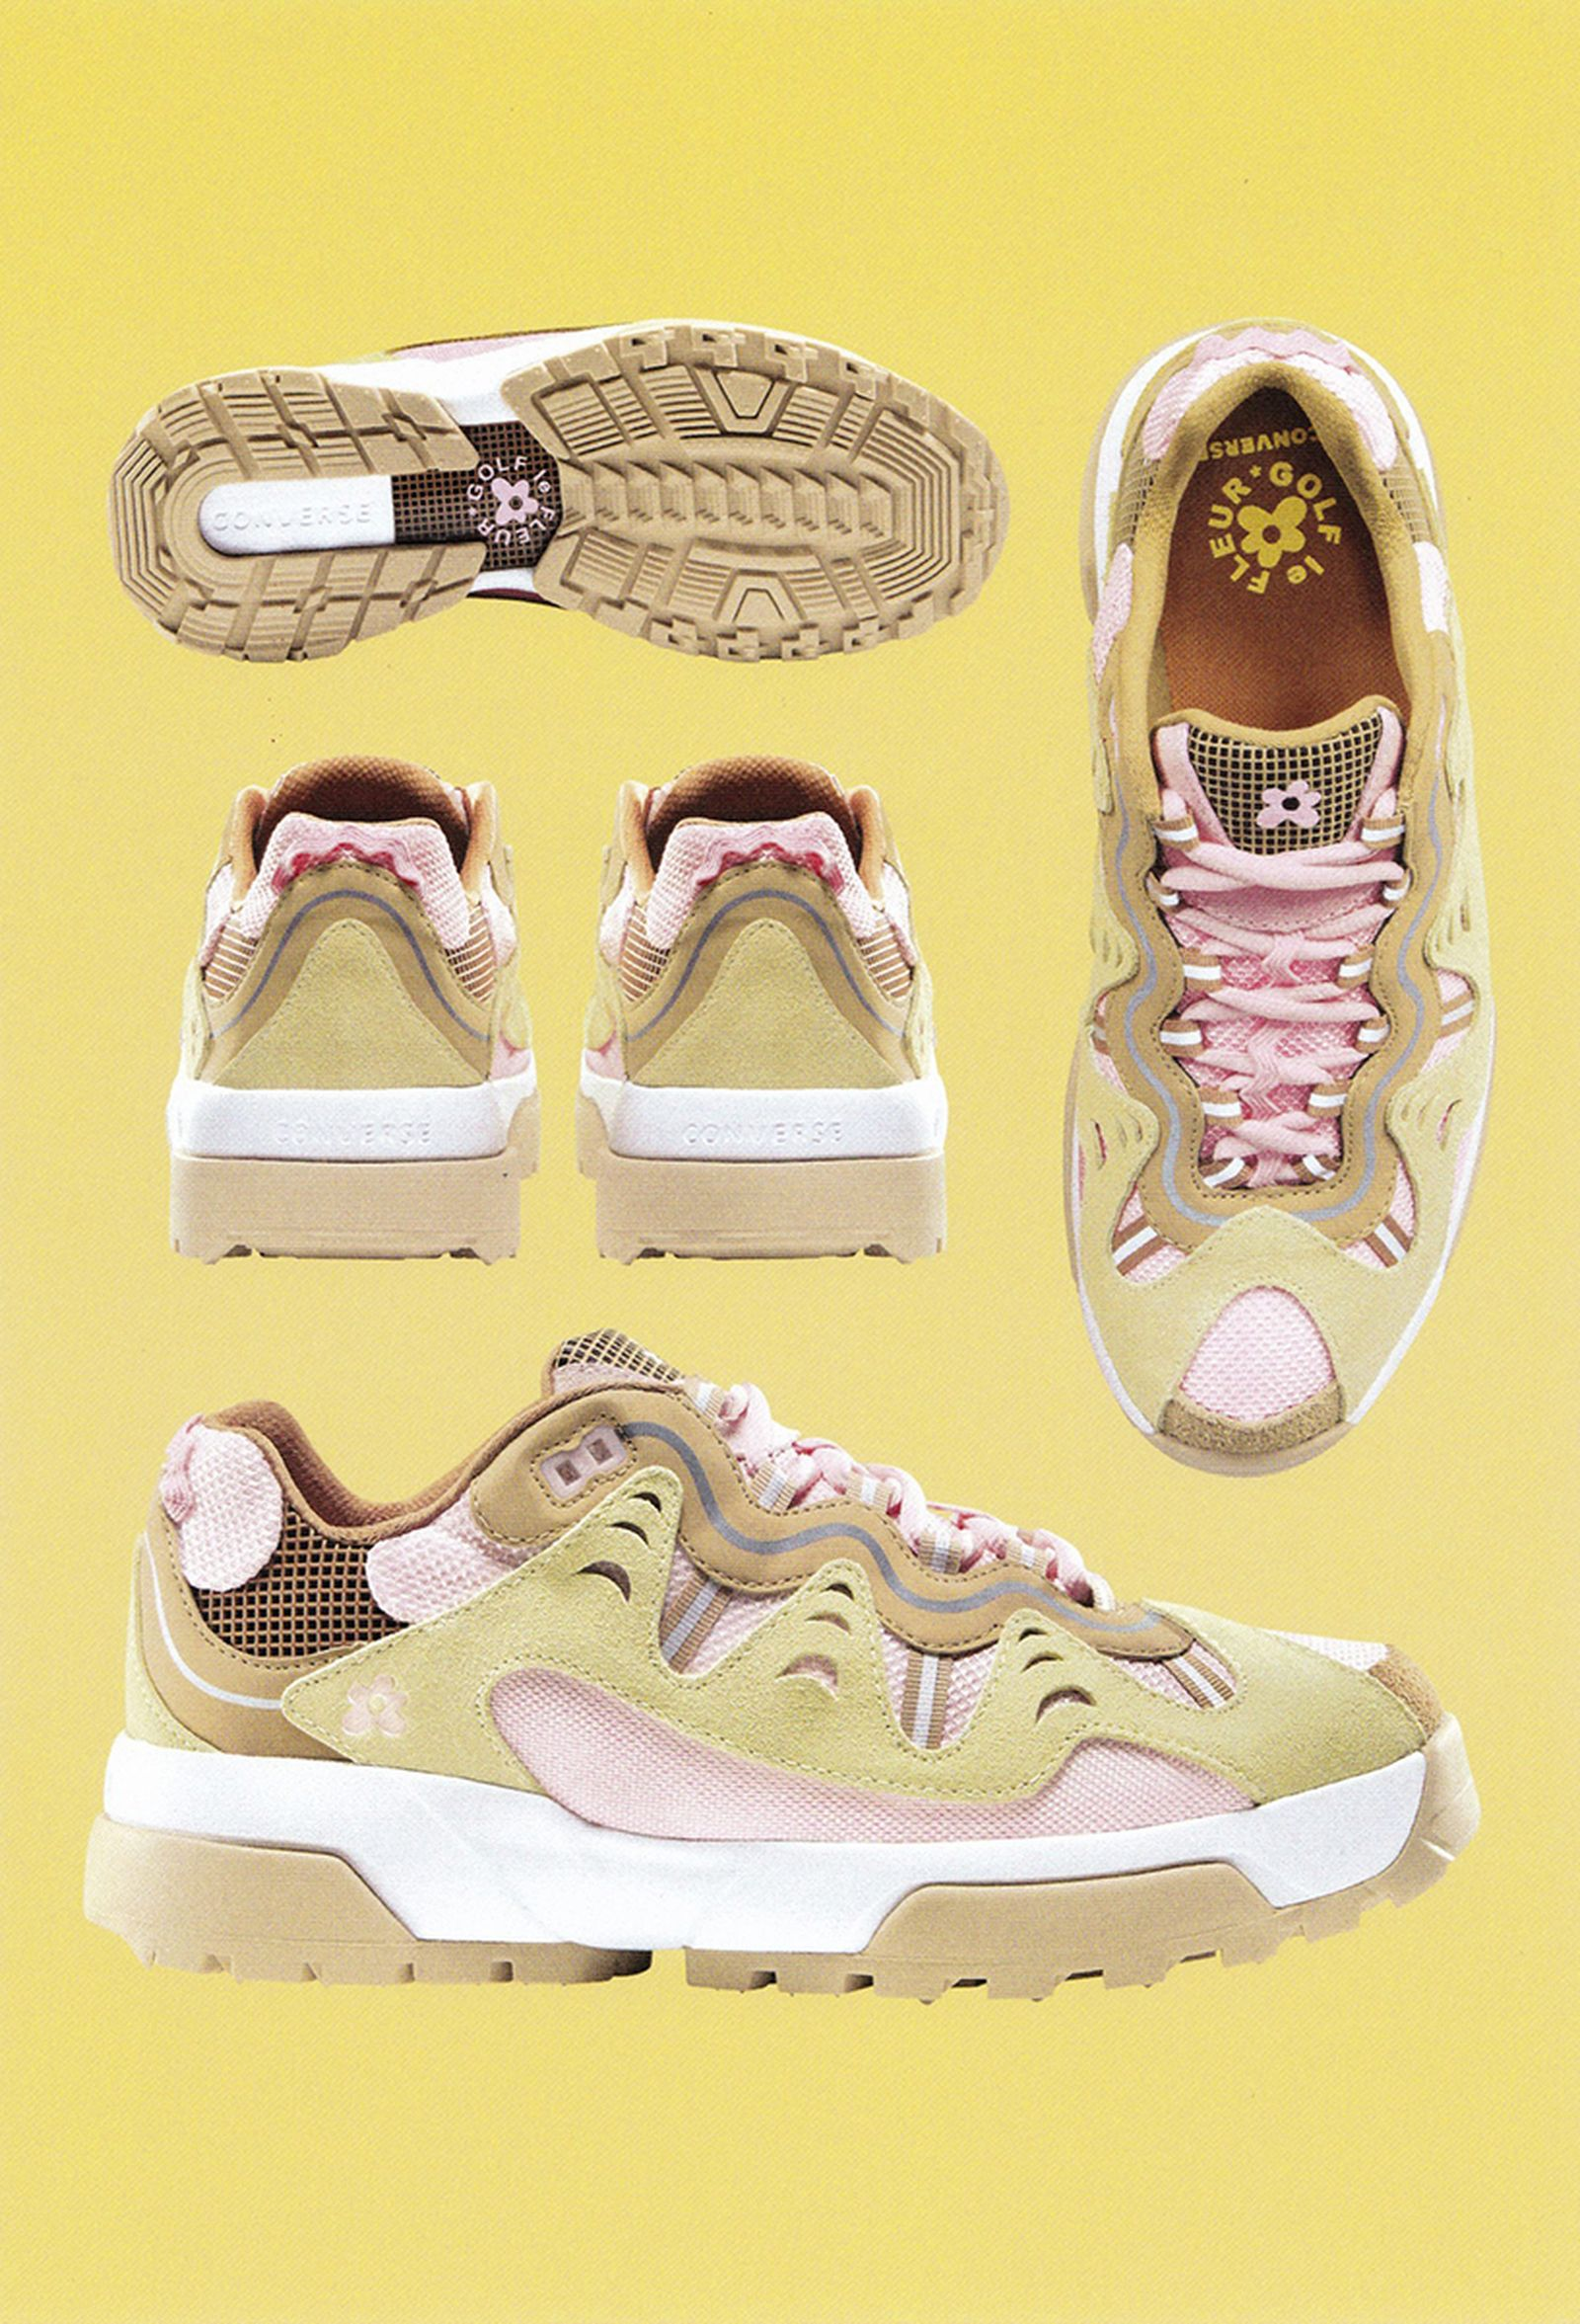 golf-le-fleur-converse-gianno-spring-2020-release-date-price-1-01